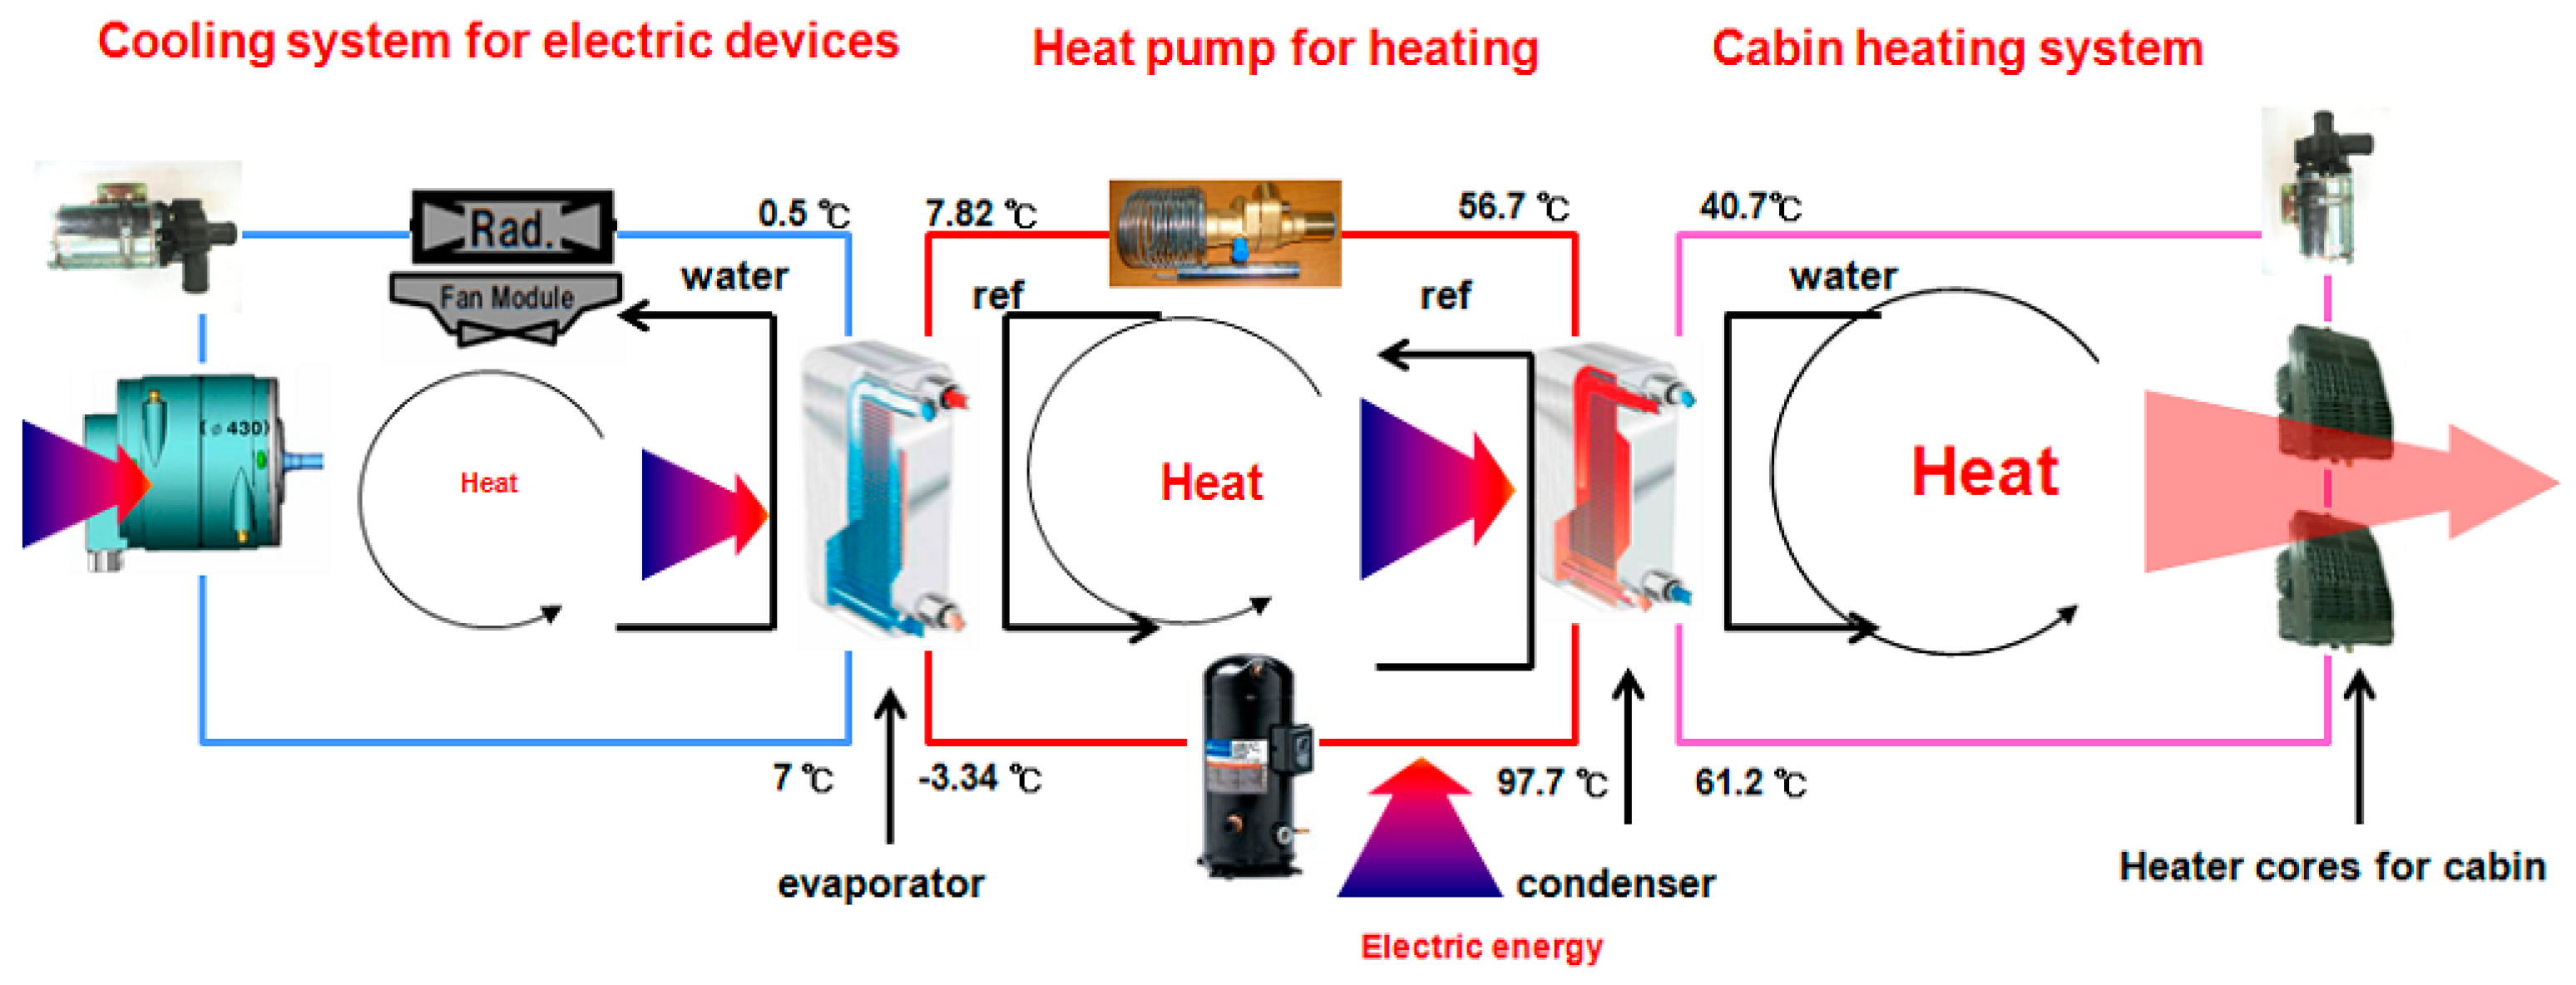 Energies Free Full Text Progress In Heat Pump Air Conditioning Energy Wiring Diagram Schematic 09 00240 G012 1024